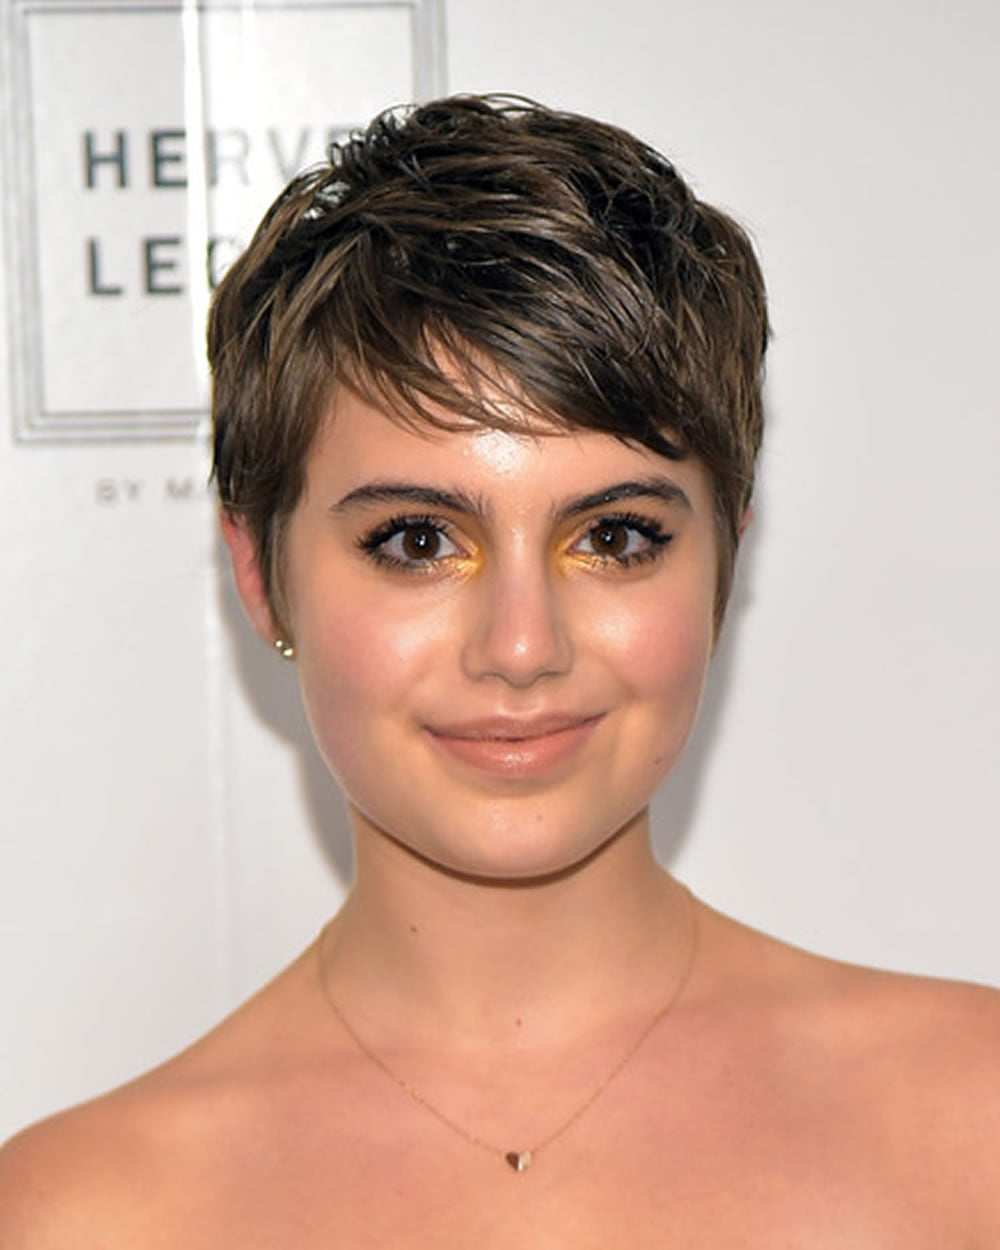 Pixie Hairstyles Fine Hair for Round Face 2018,2019 \u2013 Page 8